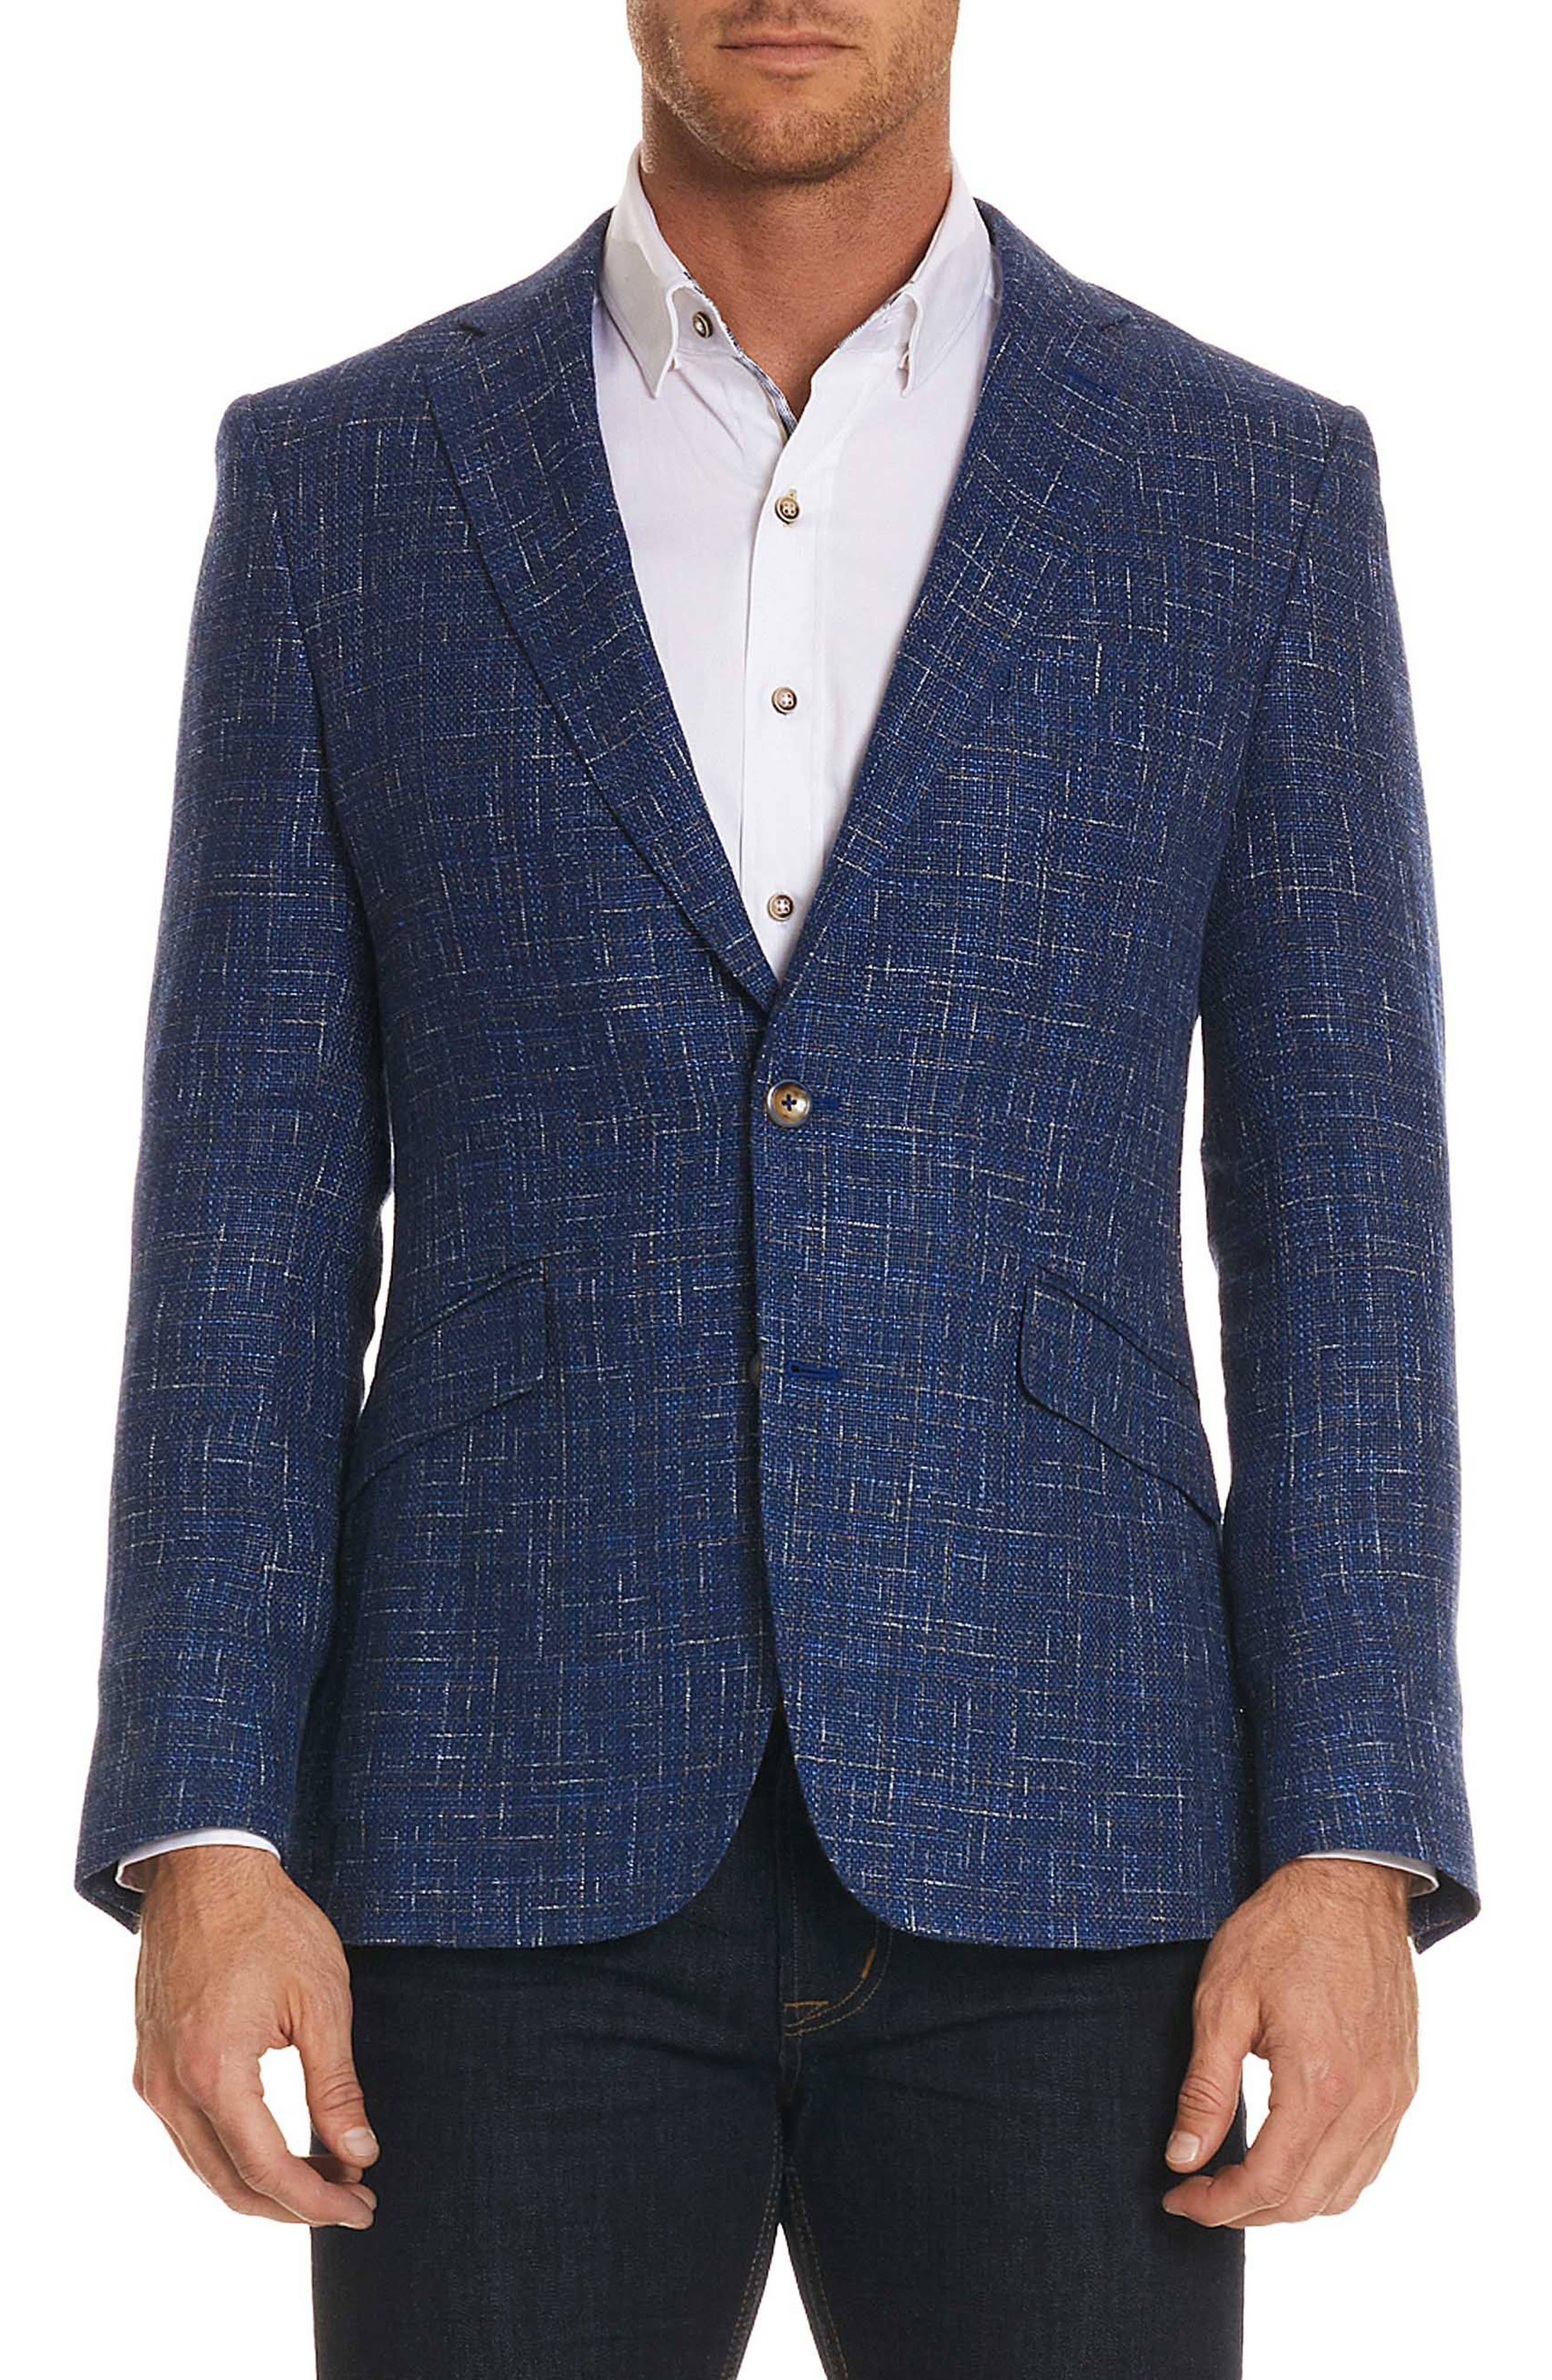 Jeremy Tailored Fit Sportcoat,                             Main thumbnail 1, color,                             400